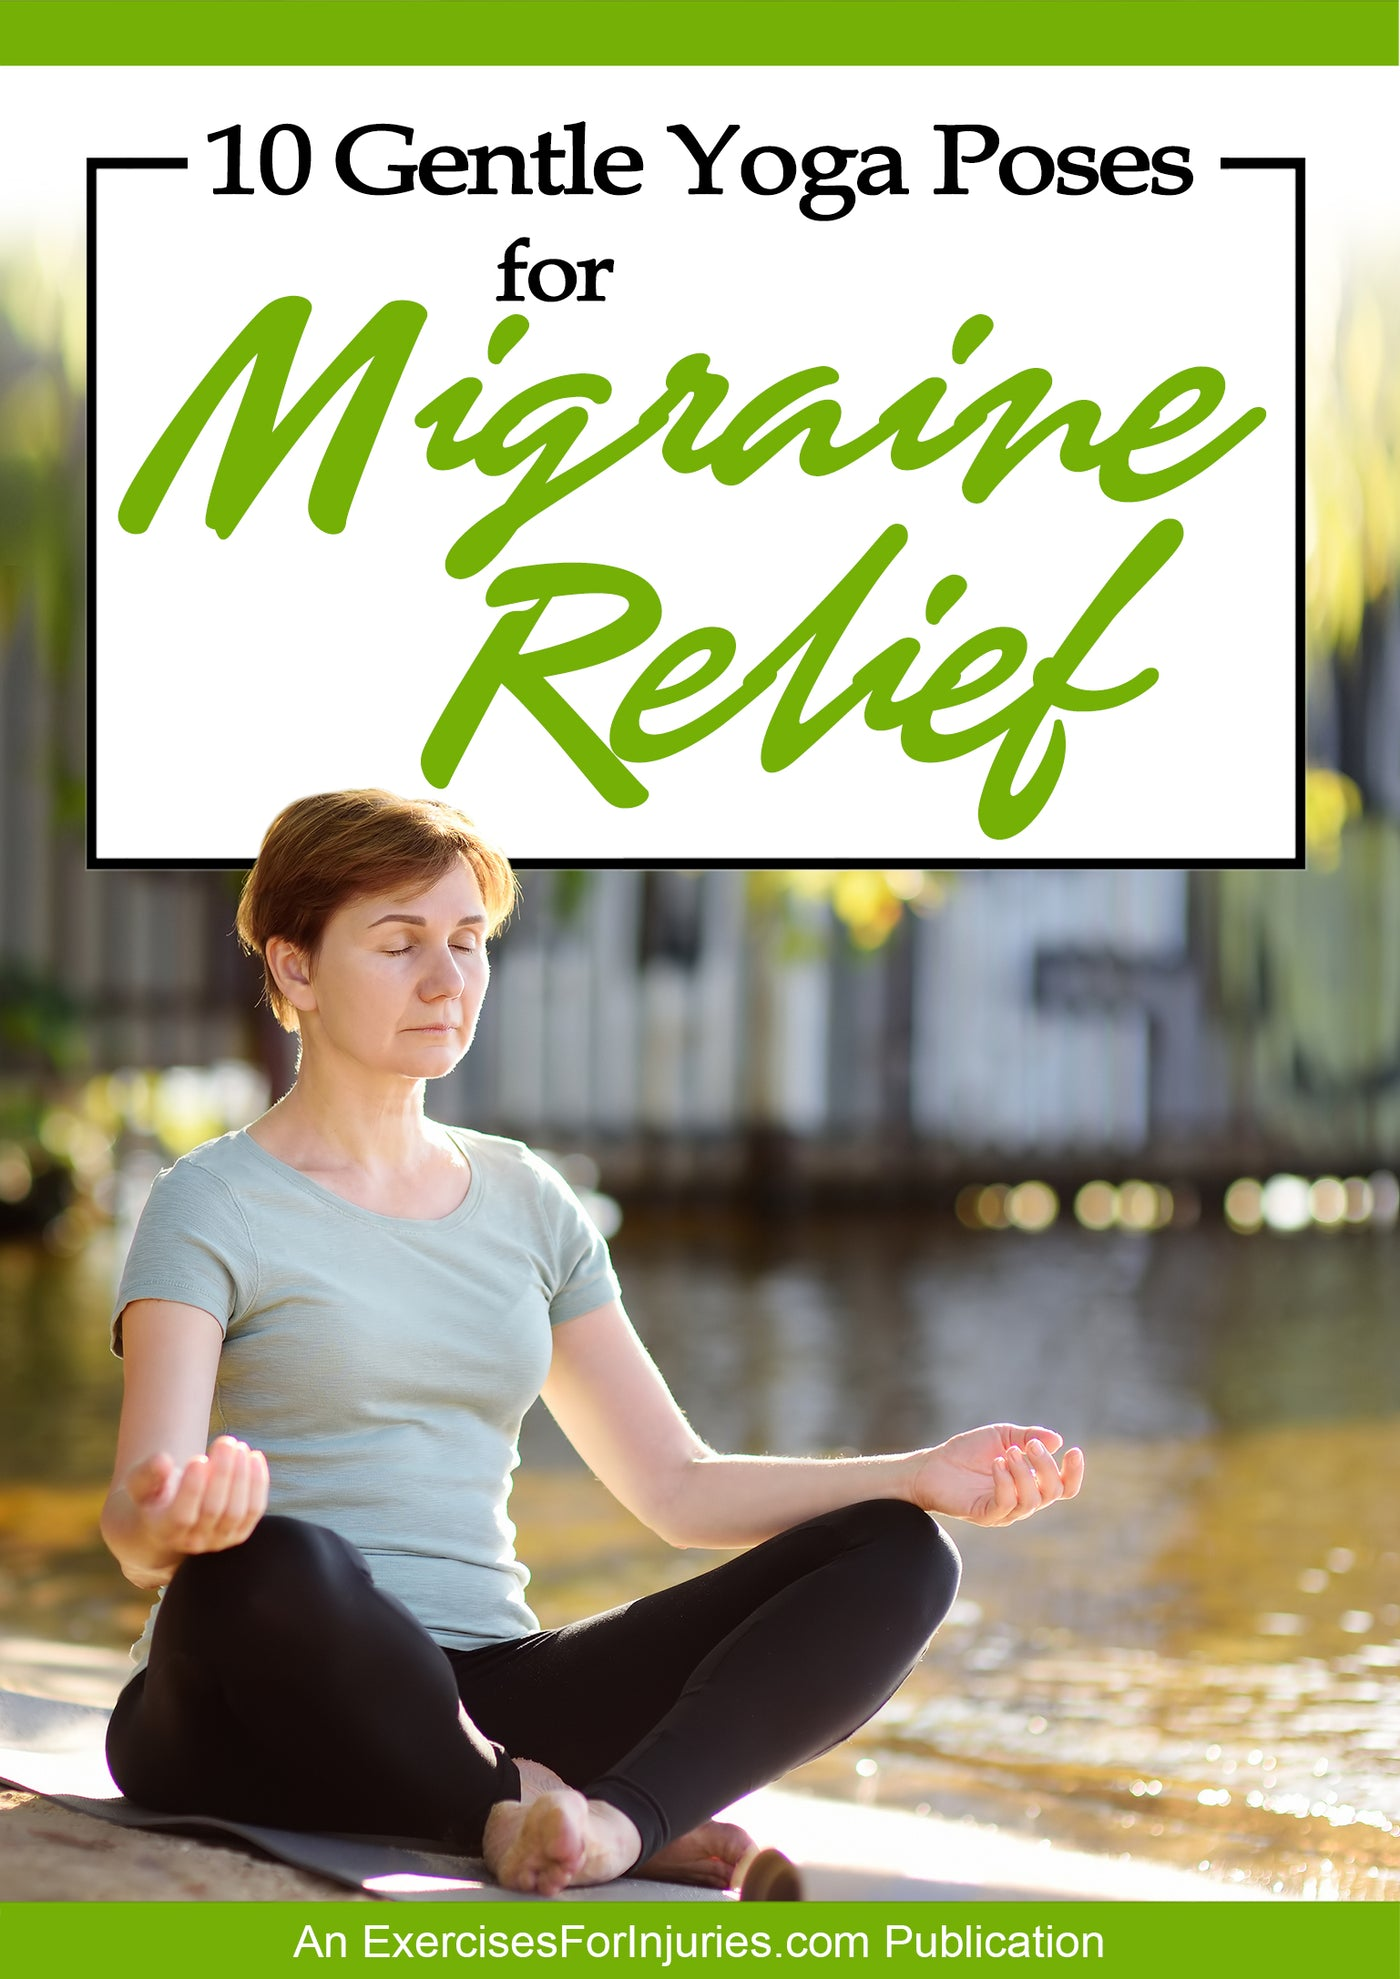 42 Gentle Yoga Poses for Migraine Relief - Digital Download (EFISP)